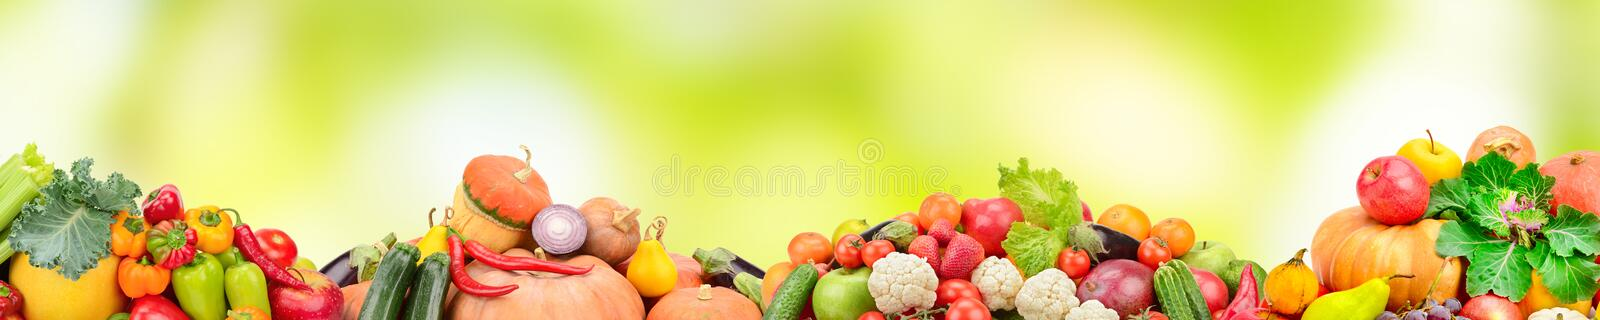 Wide collage of fresh fruits and vegetables on green blur background. stock illustration